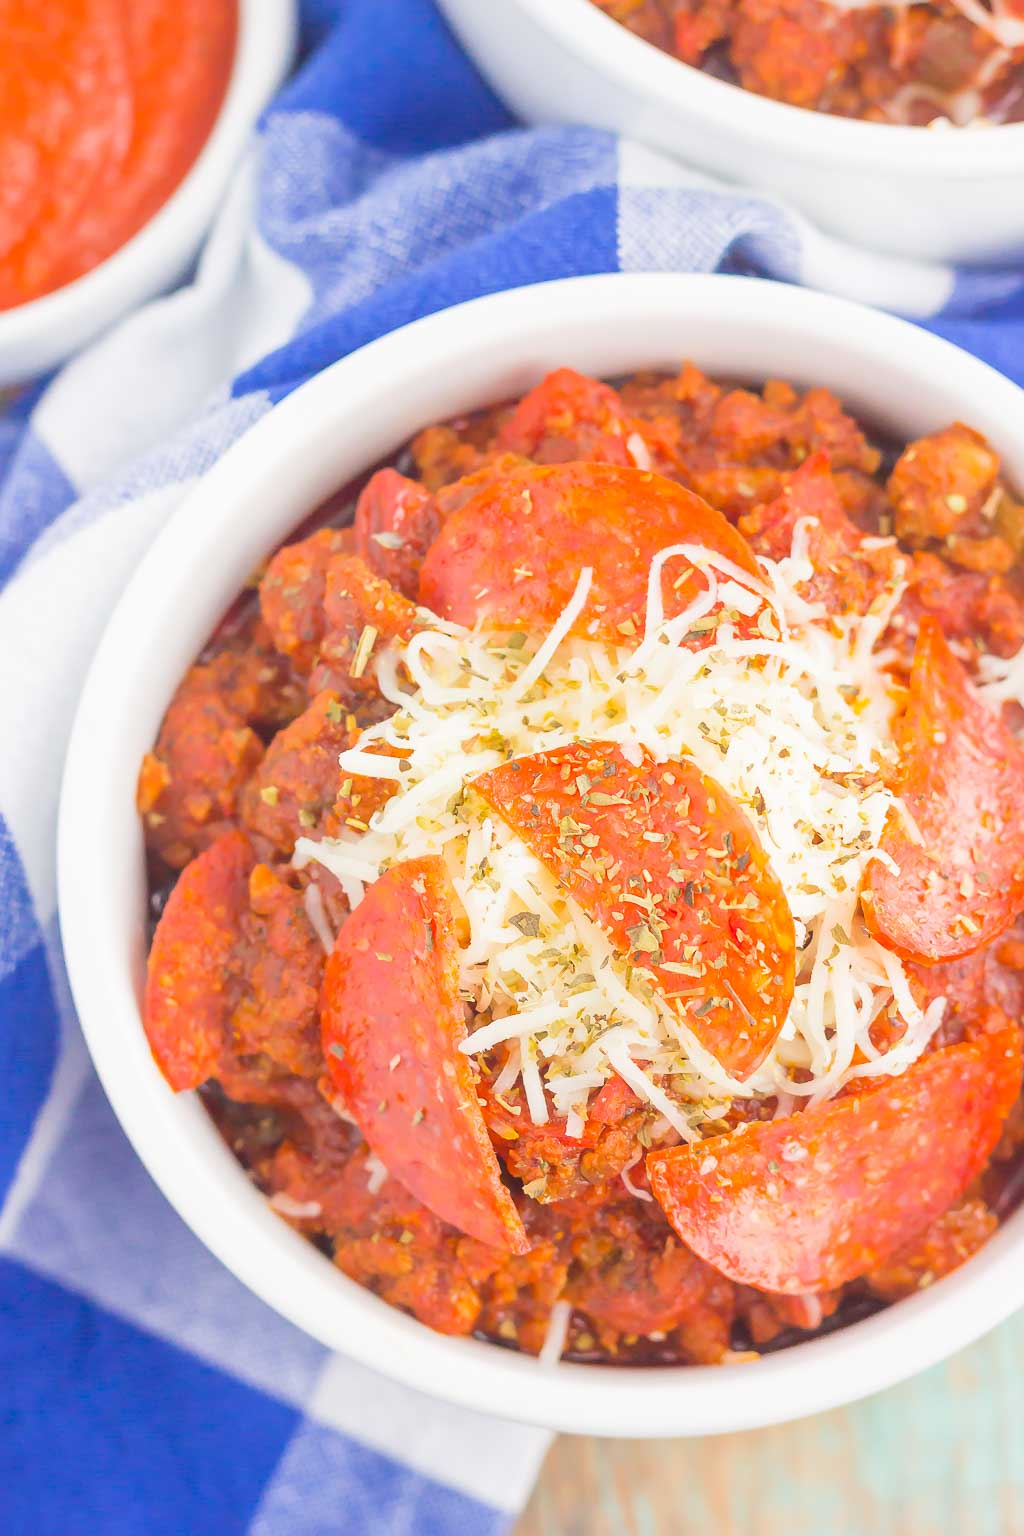 This Slow Cooker Pizza Chili is loaded with ground beef, Italian sausage, pepperoni, and zesty spices. It's a fun twist on a classic comfort dish that will keep you coming back for more!